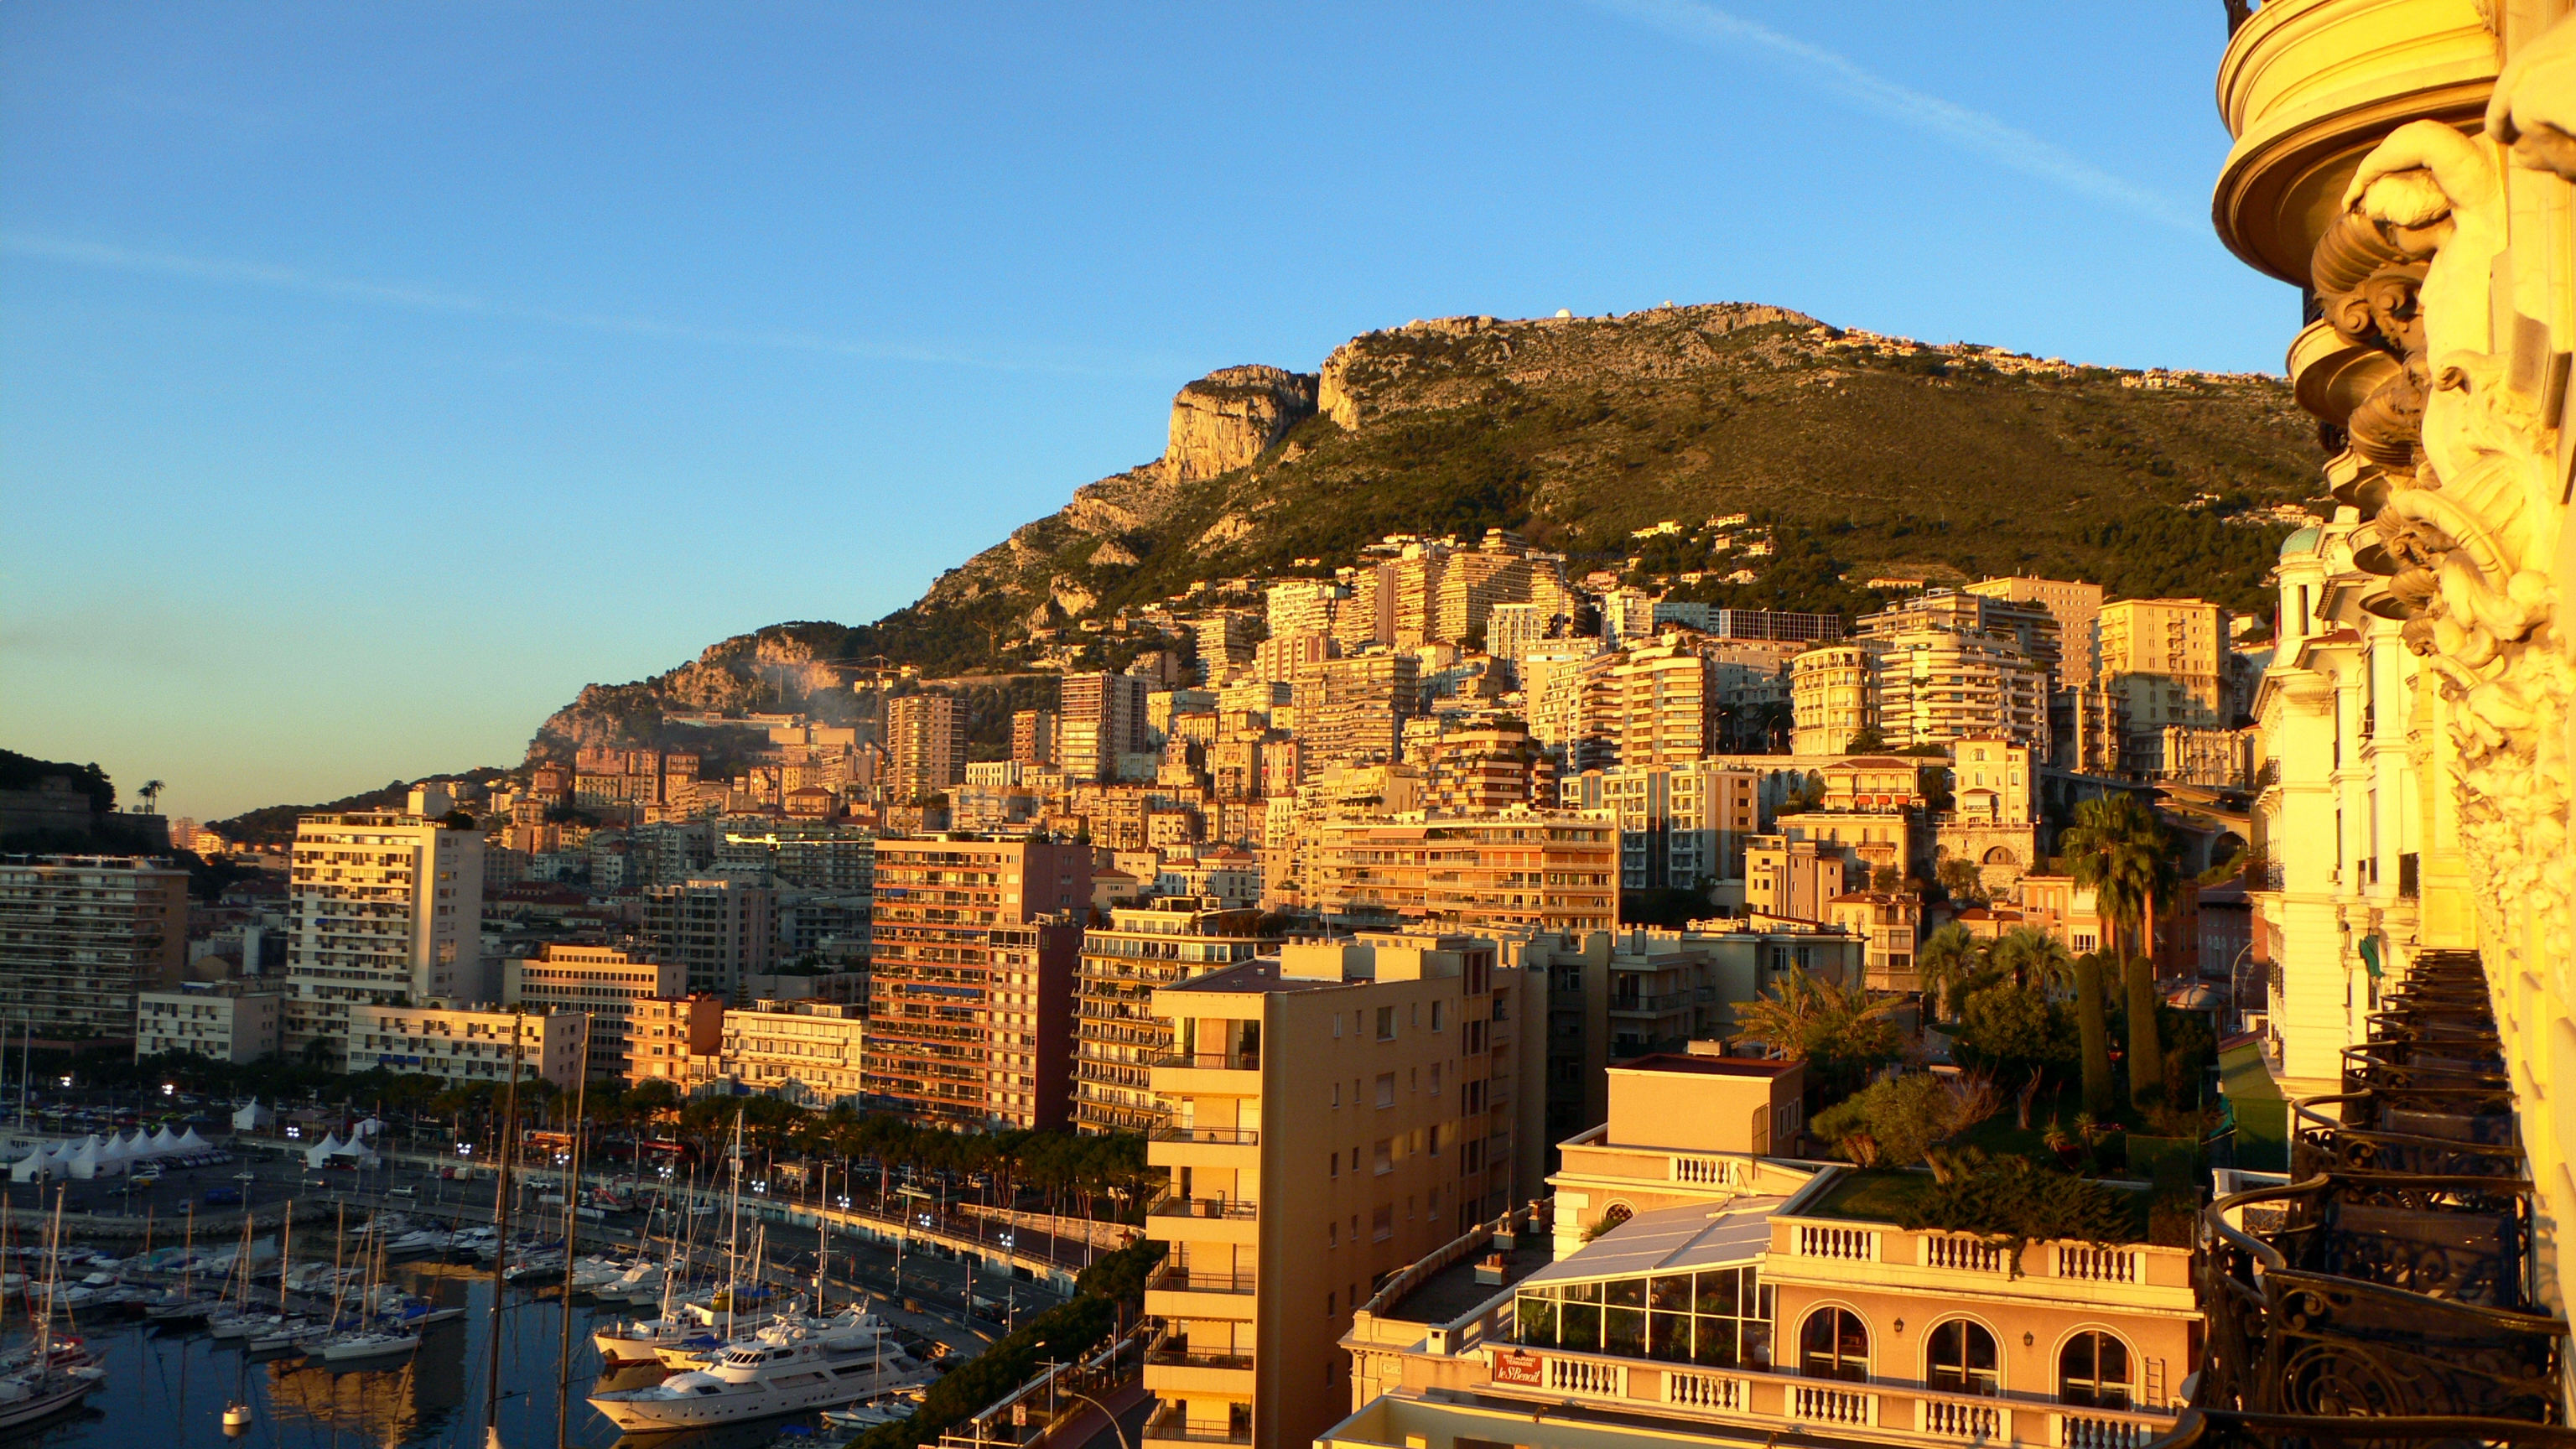 monaco ancient country has rich and 1 What they do have is an army of wealthy westerners who come to teach  other  countries without a military force include iceland, mauritius, monaco, panama,   army in the world under saddam hussein is now a shadow of its former self   eritrea's armed forces has one of the highest concentrations of.